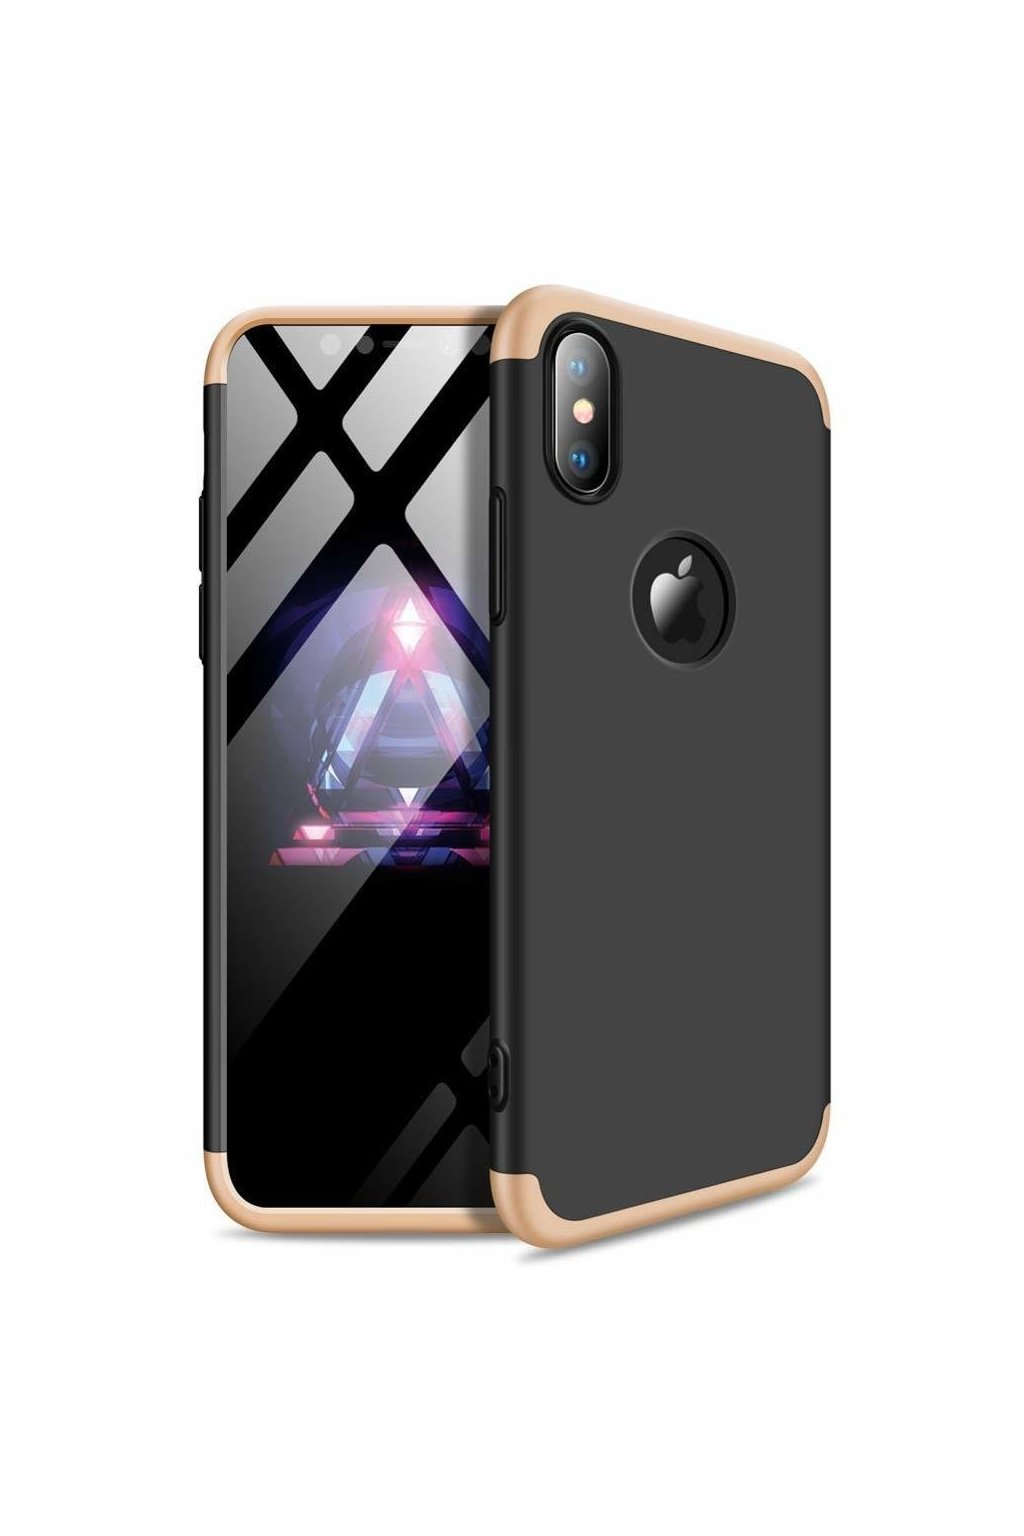 eng pl 360 Protection Front and Back Case Full Body Cover iPhone XR black gold logo hole 45690 1